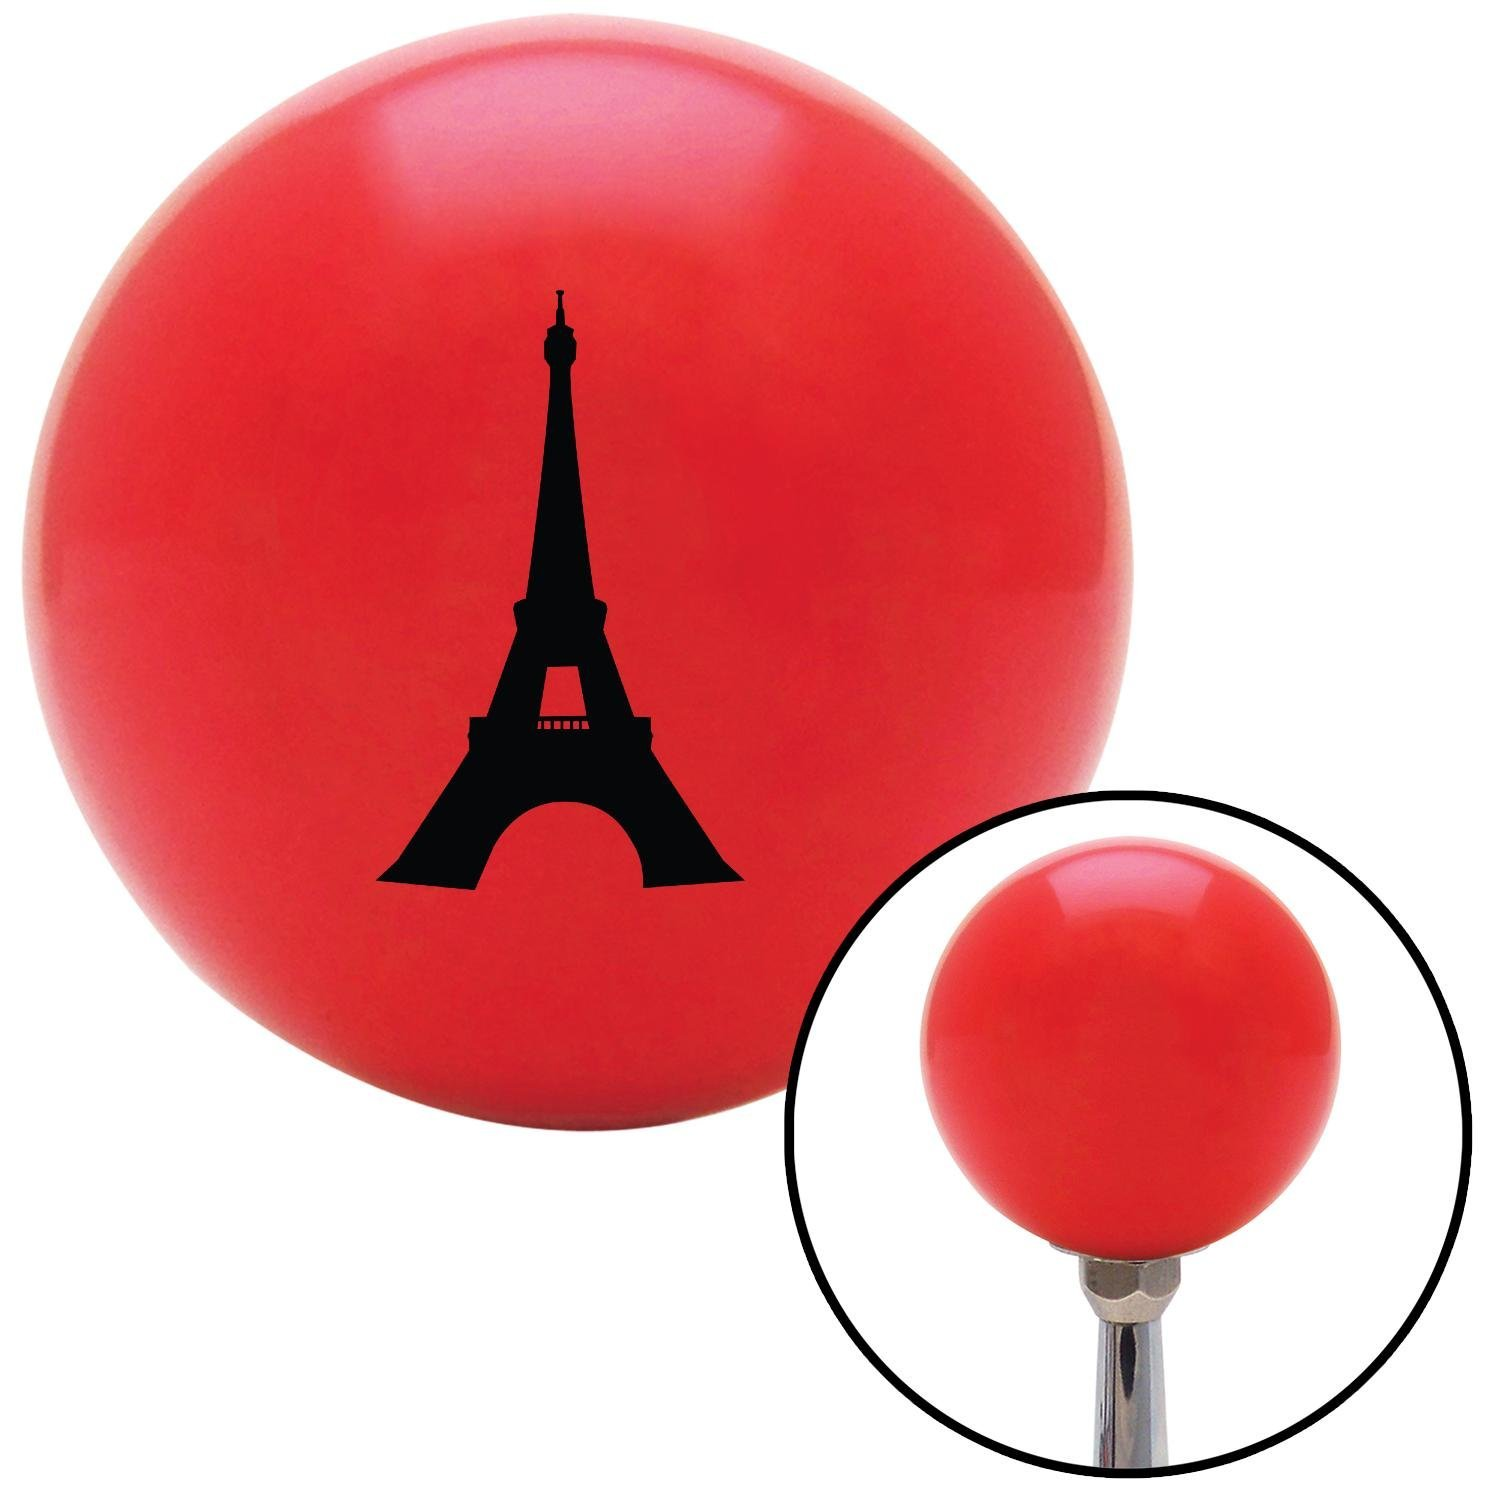 Black The Eiffel Tower American Shifter 94033 Red Shift Knob with M16 x 1.5 Insert